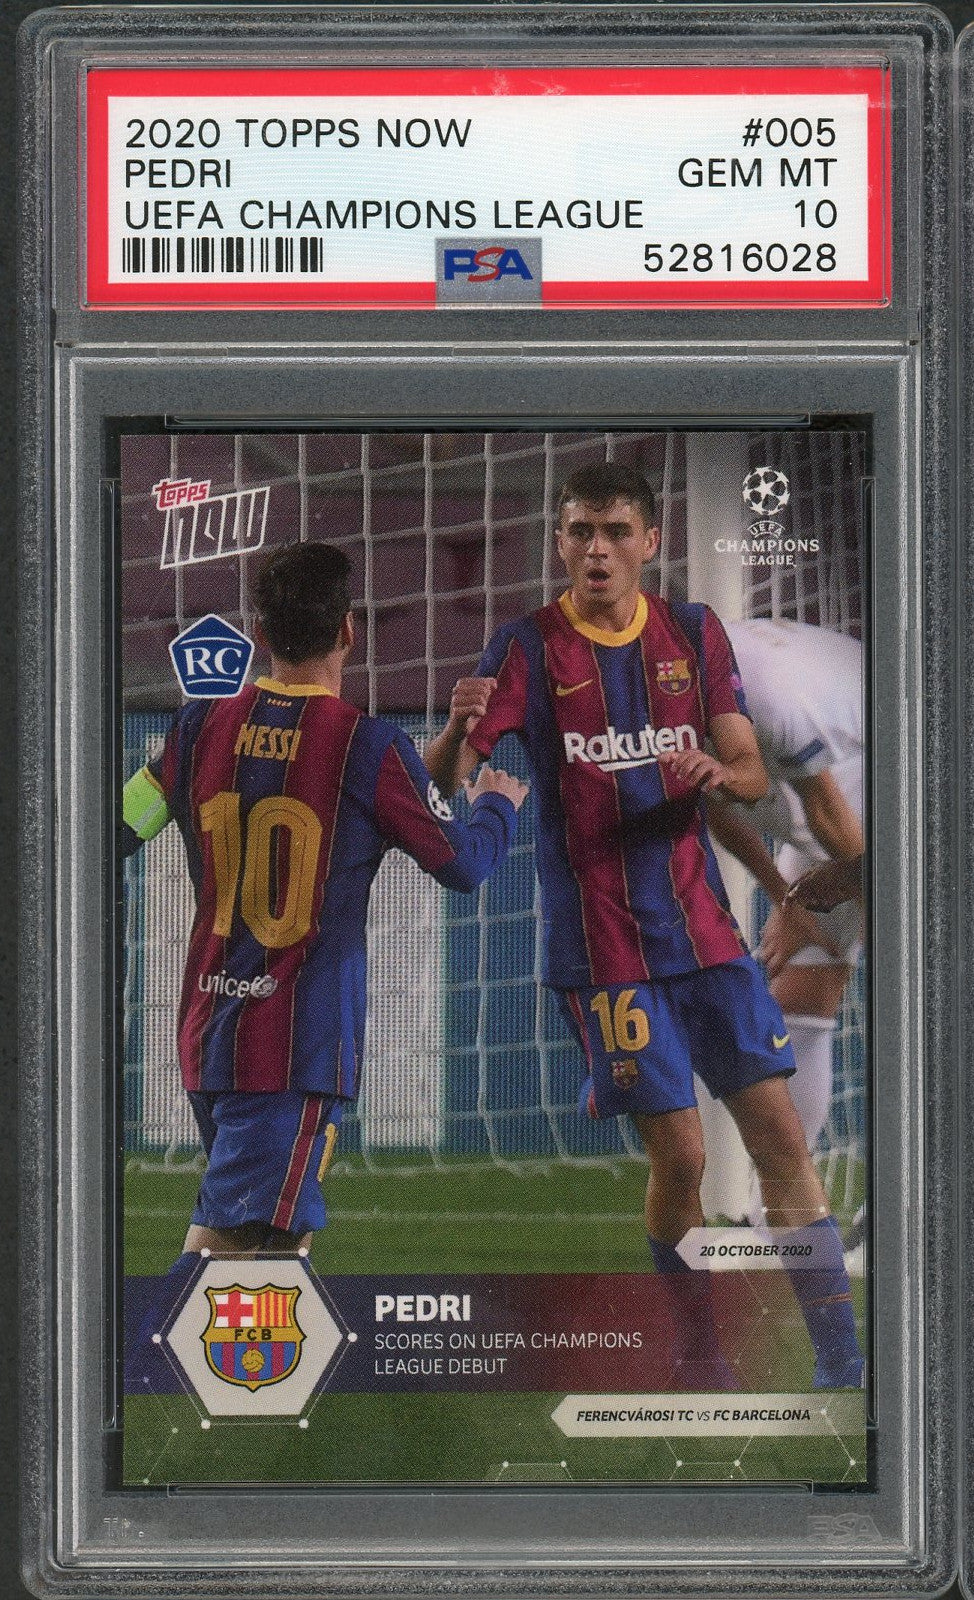 Pedri FC Barcelona 2020 Topps Now Soccer Rookie Card RC #005 Graded PSA 10 GEM MINT-Powers Sports Memorabilia